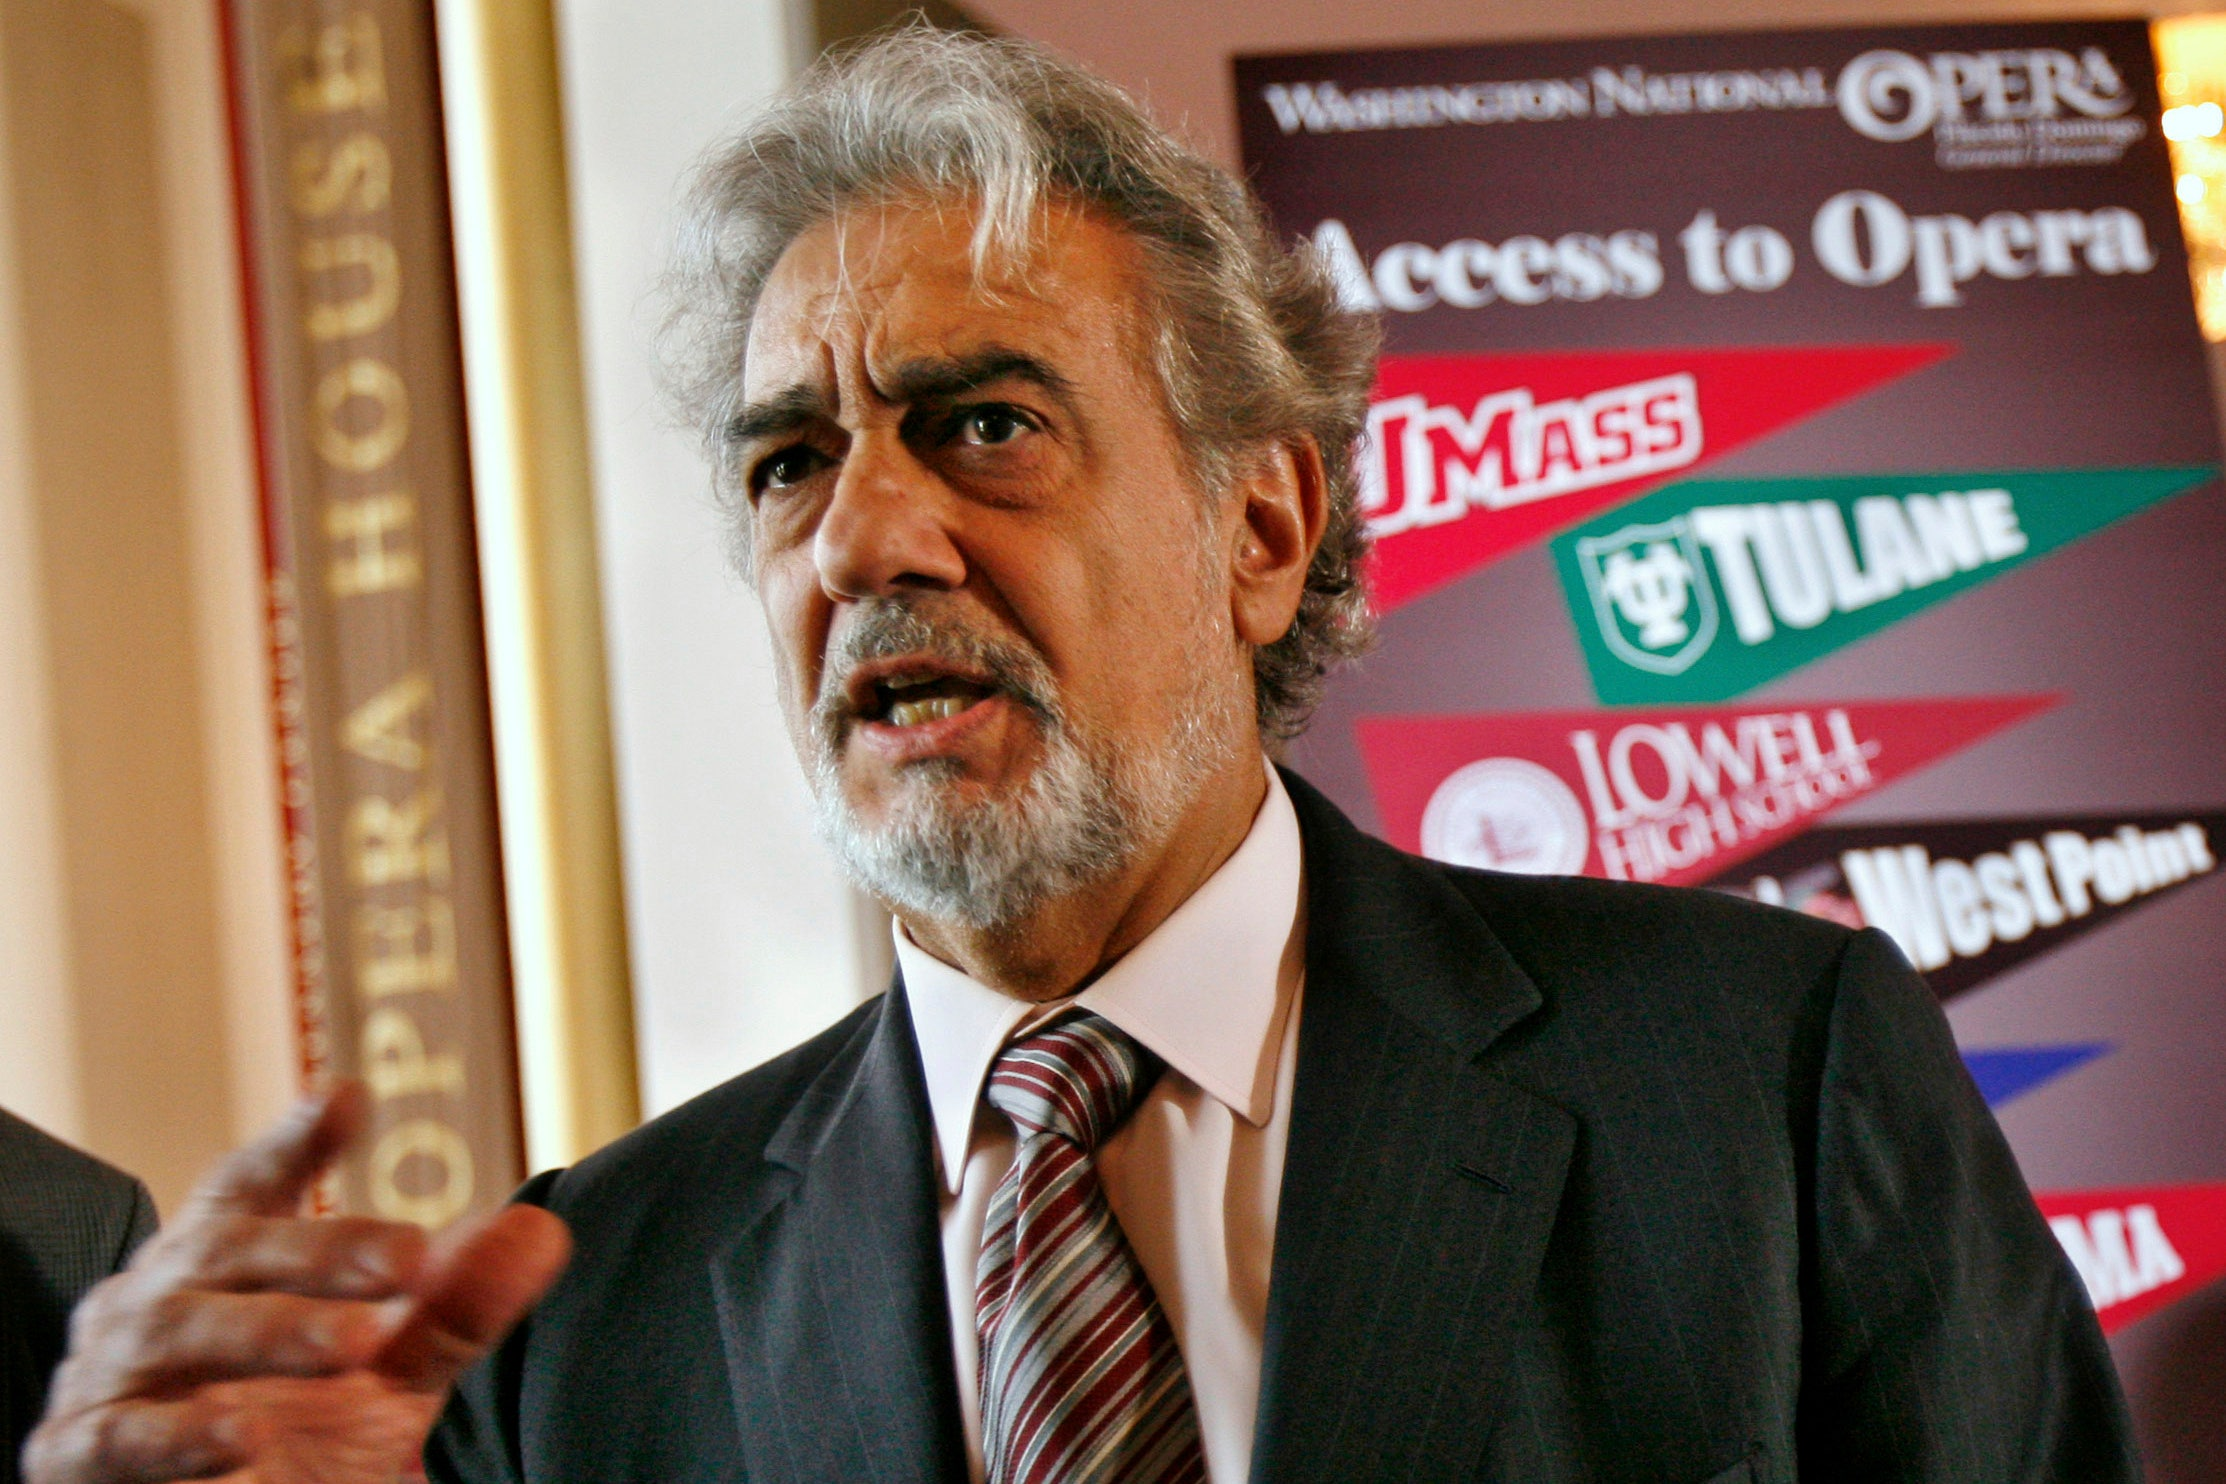 Plácido Domingo abused power, US opera union probe finds